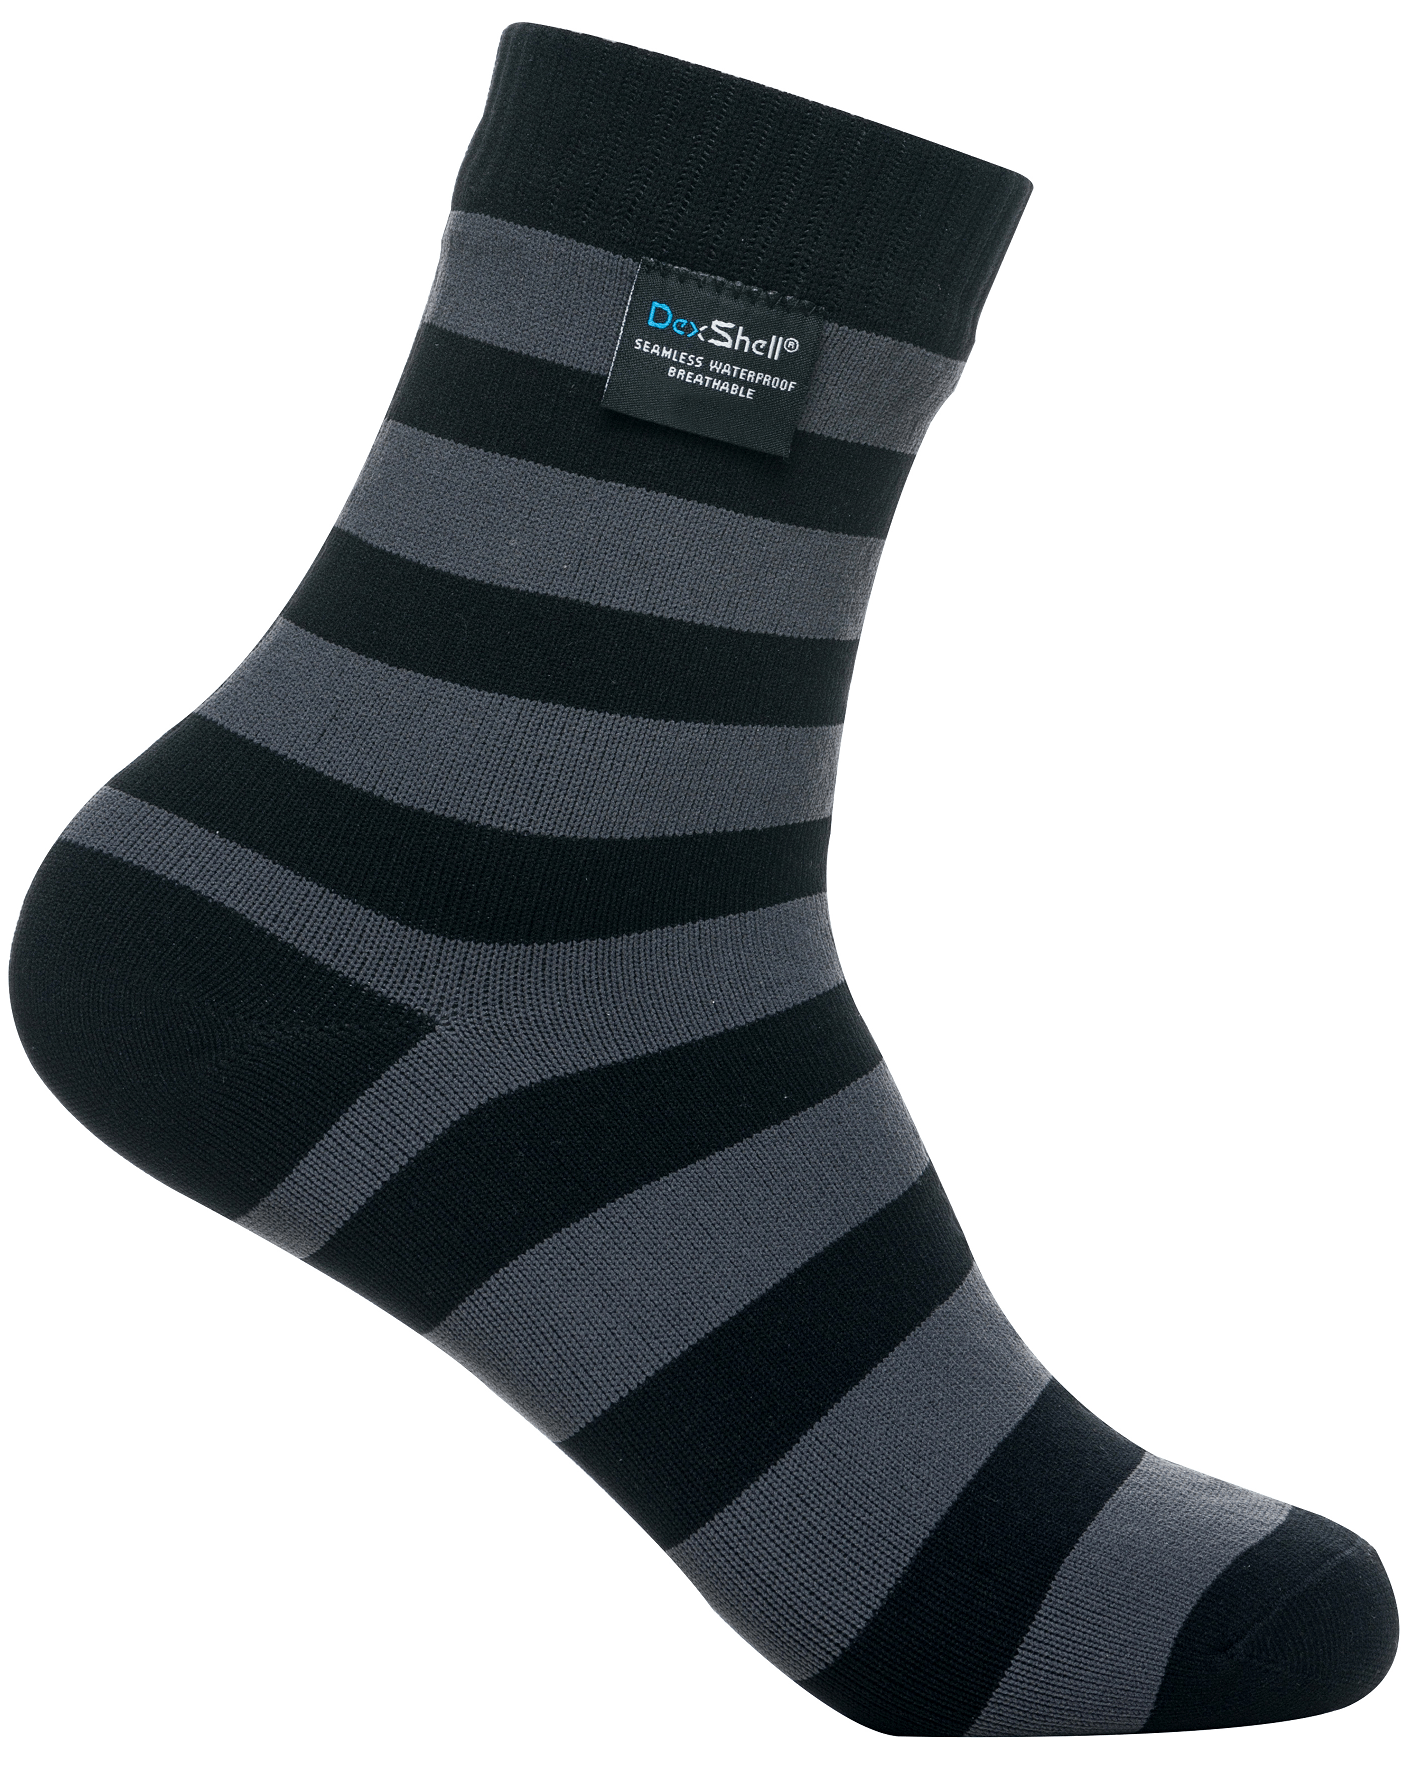 Dexshell Ultralite Bamboo Sock DS643XL